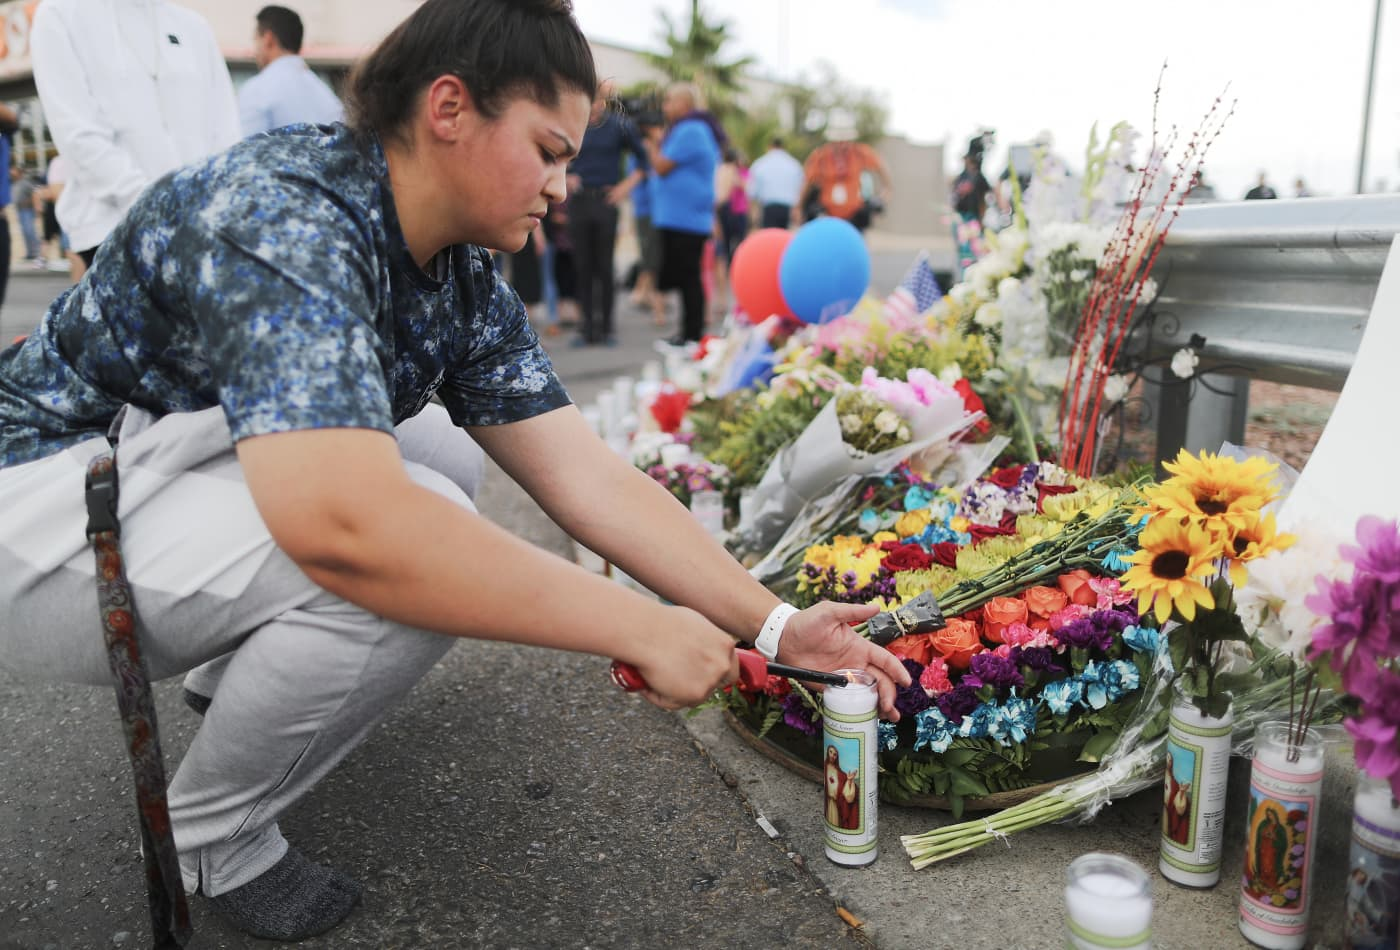 How to help victims of the mass shootings in El Paso and